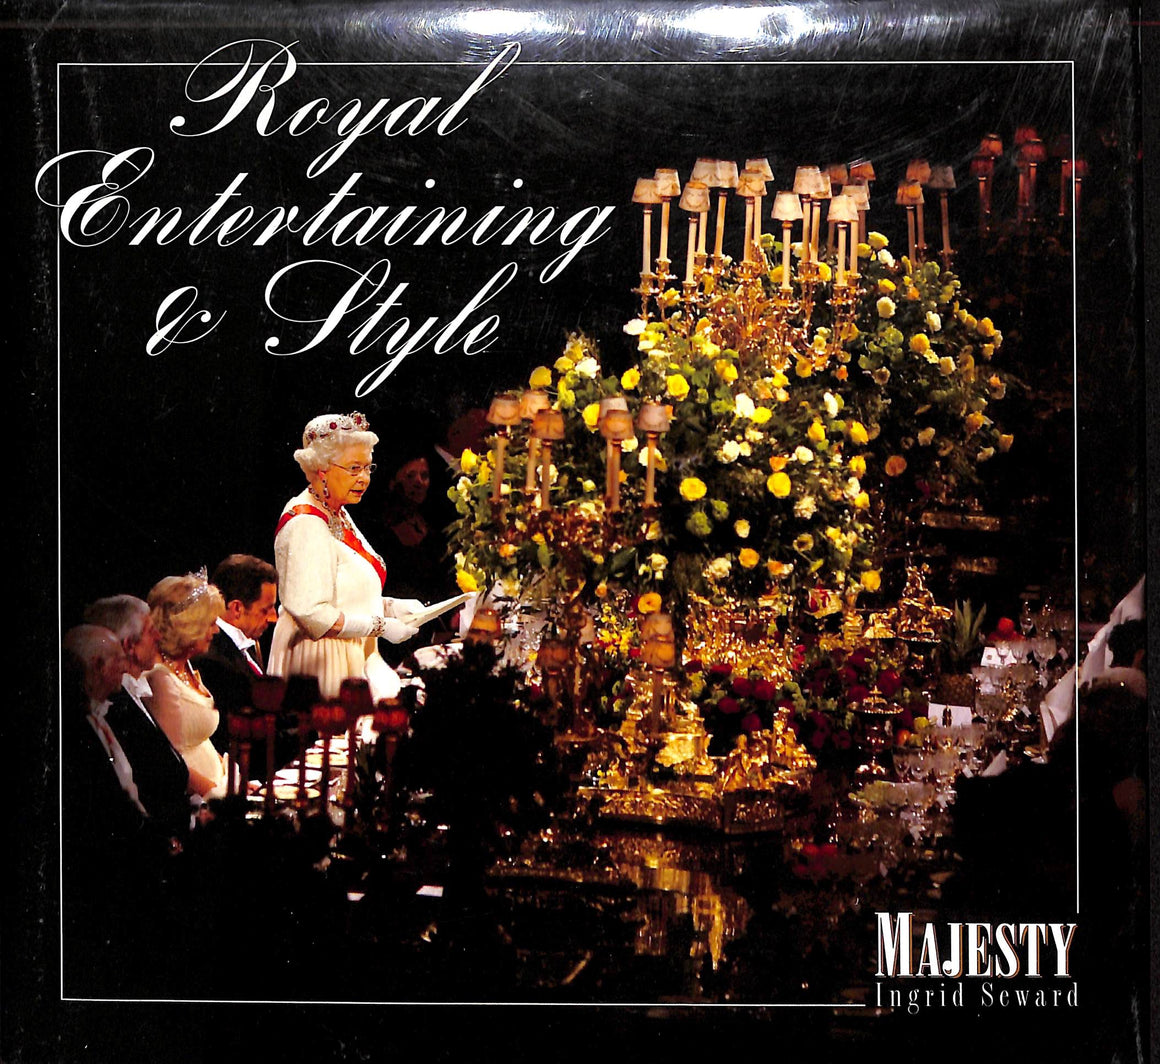 Royal Entertaining & Style by Ingrid Seward (Signed!)